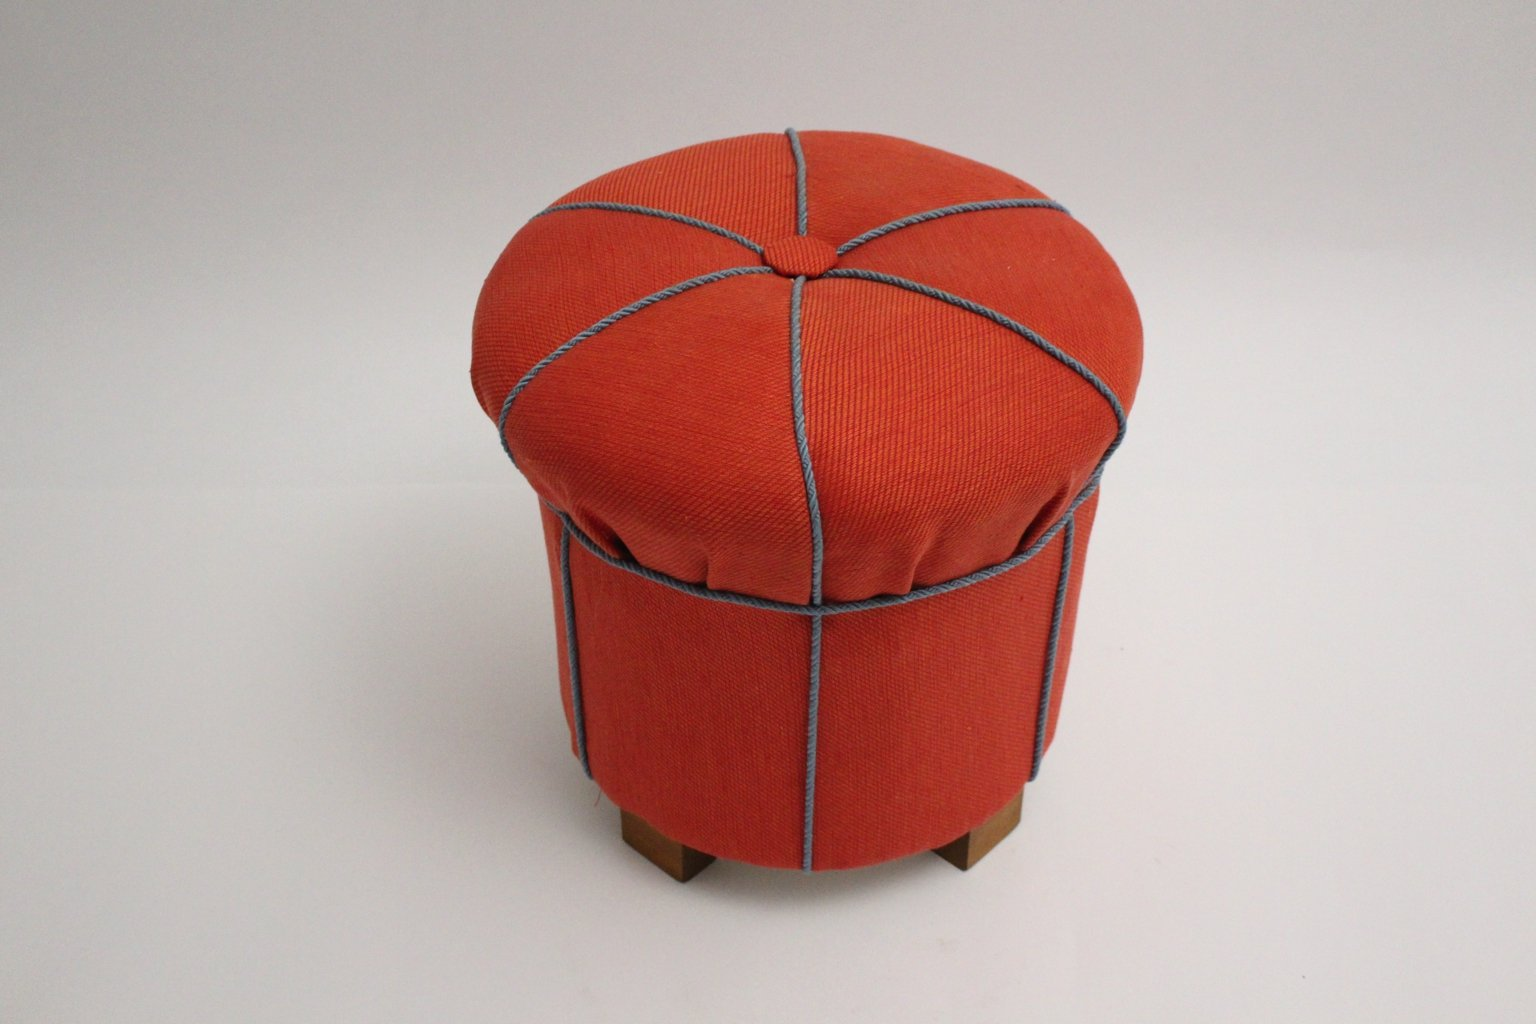 art deco pouf 1930s for sale at pamono. Black Bedroom Furniture Sets. Home Design Ideas